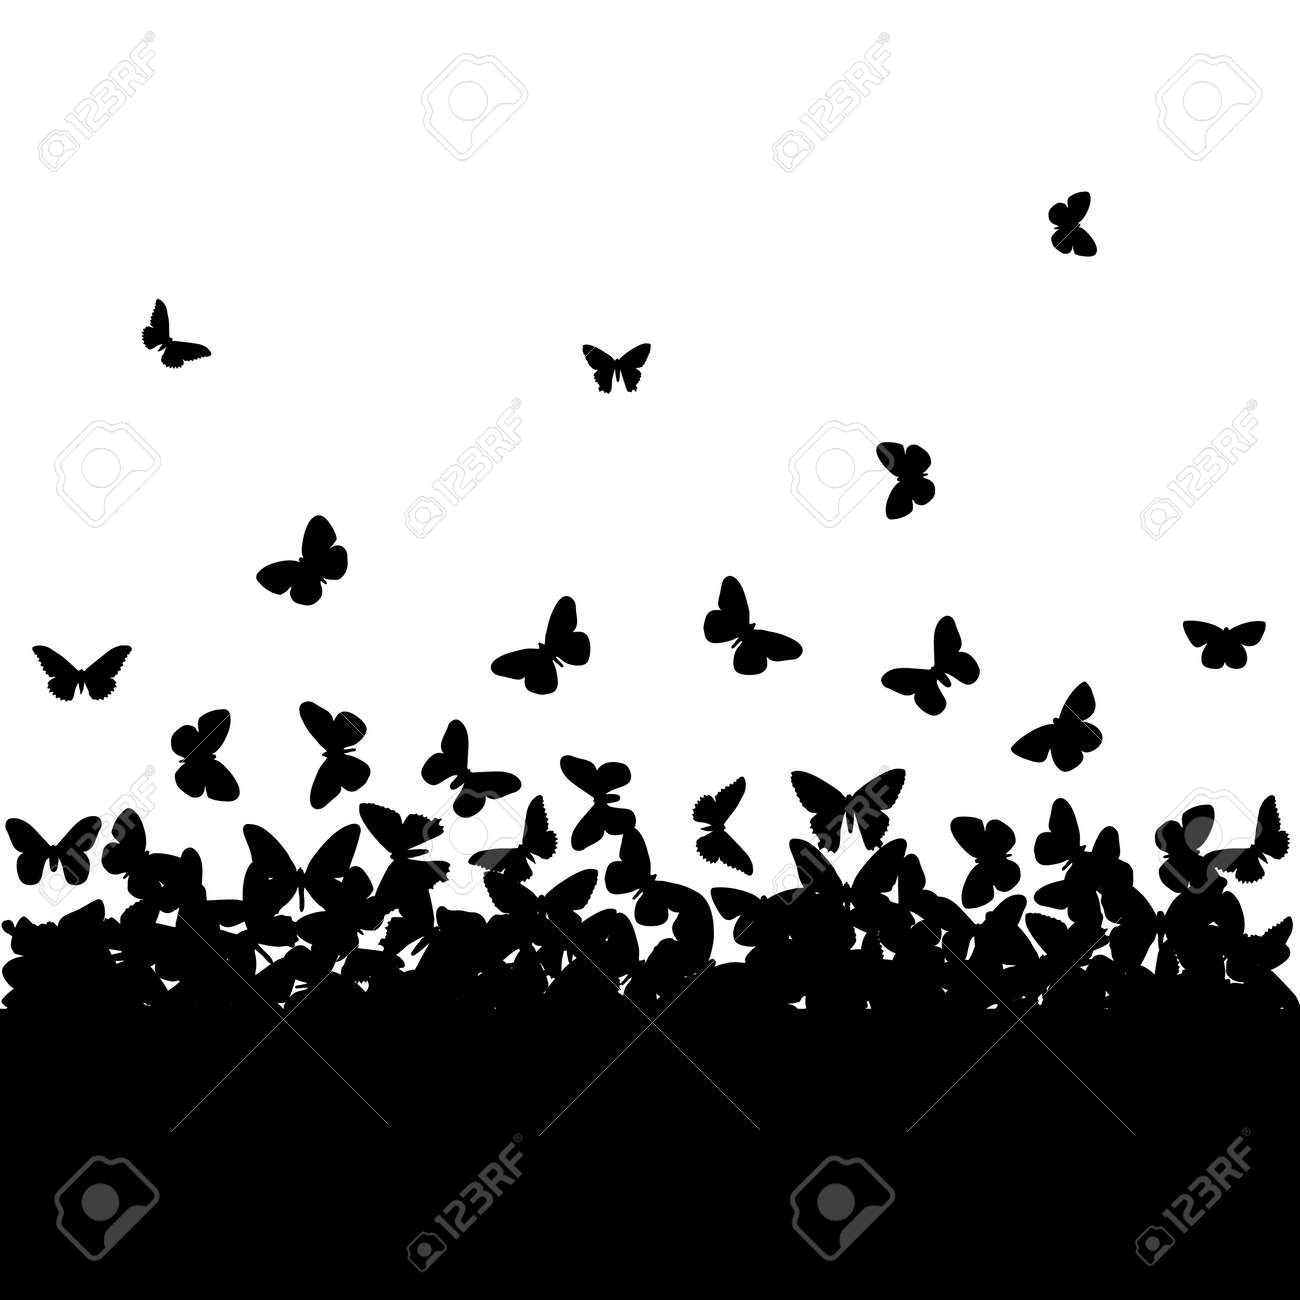 the silhouettes of butterflies royalty free cliparts vectors and